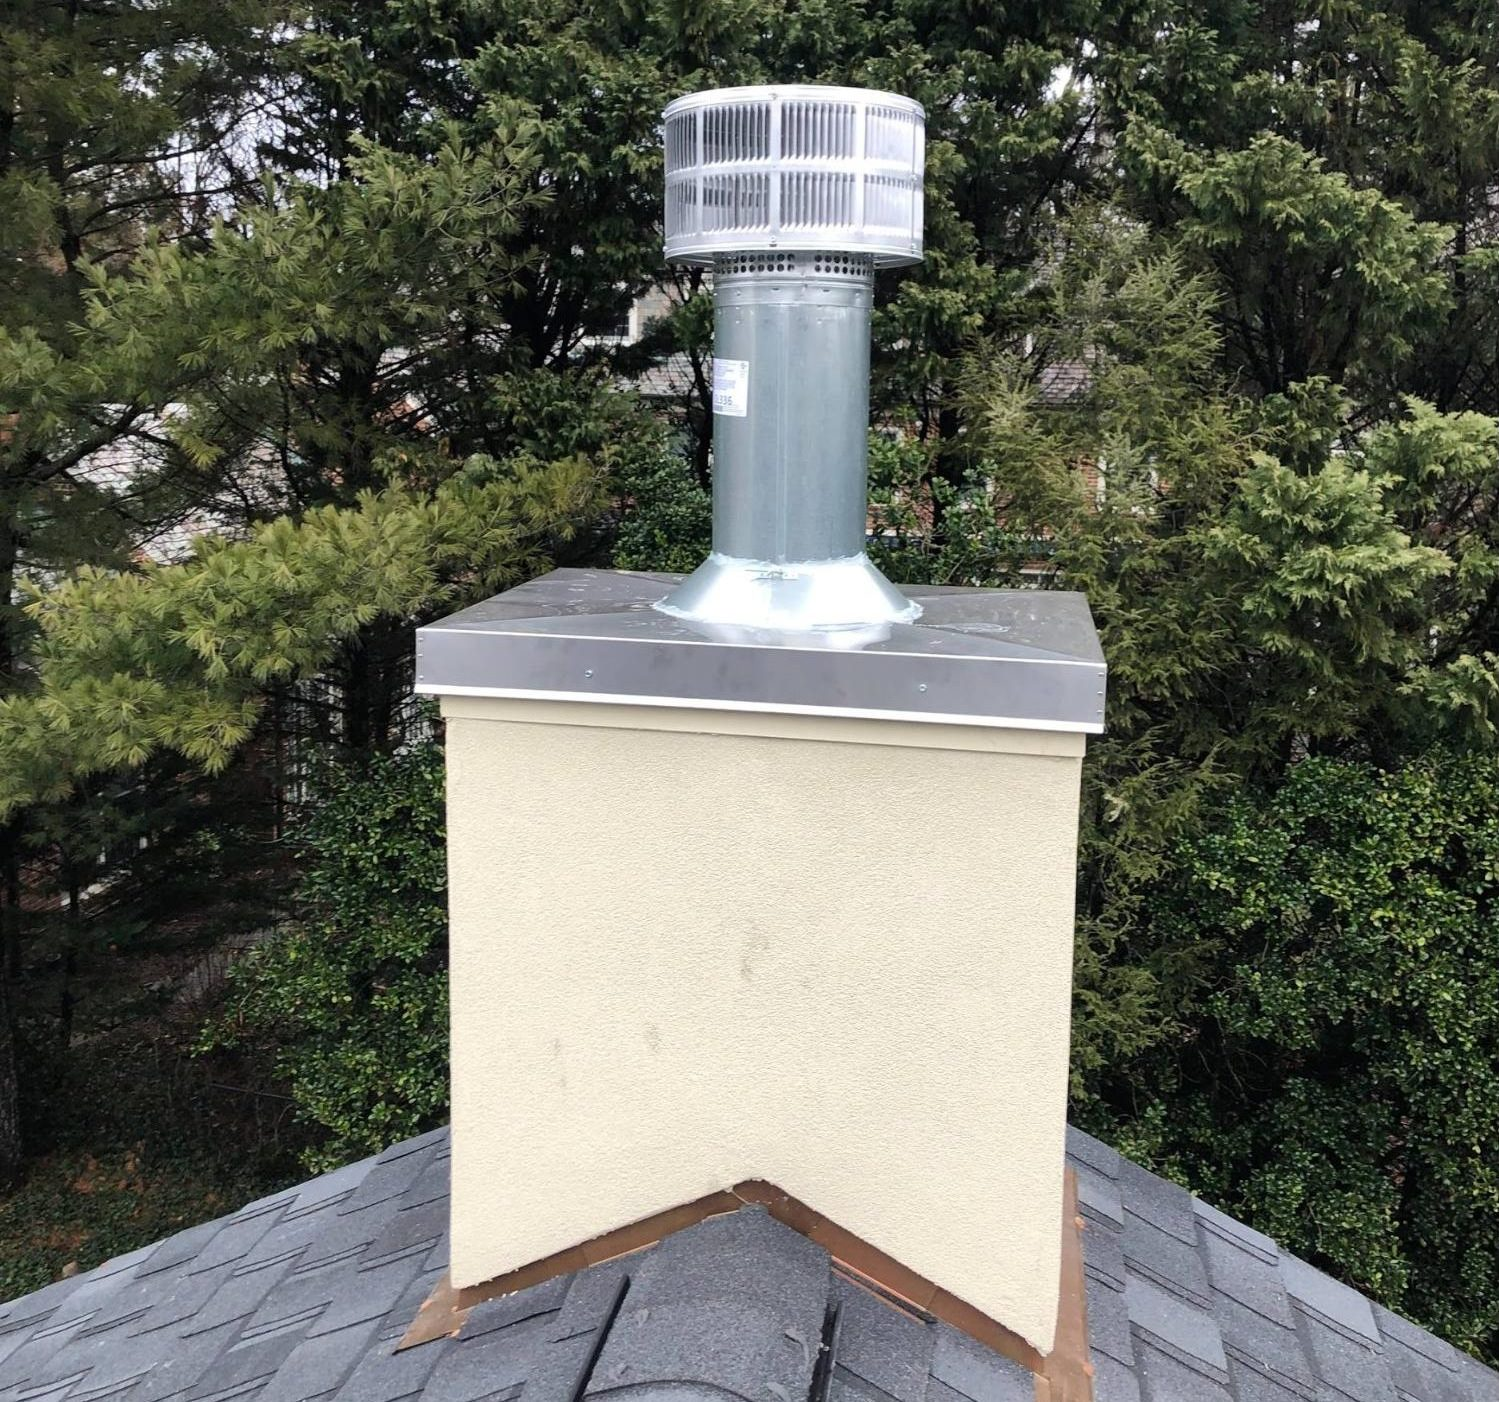 A plaster chimney chase with a metal chase cover and tall exhaust pipe